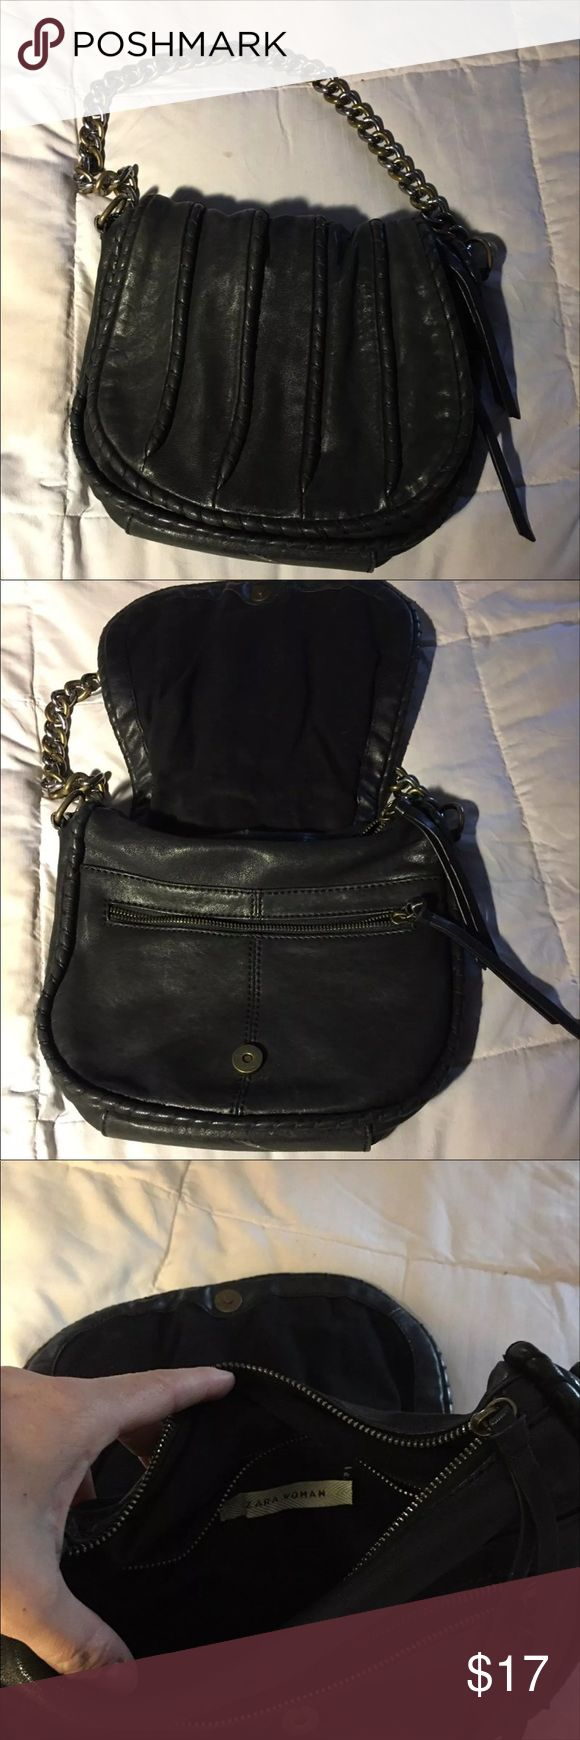 Black leather Zara purse Black leather Zara purse in nice shape. Could be dressed up or down. Zara Bags Shoulder Bags